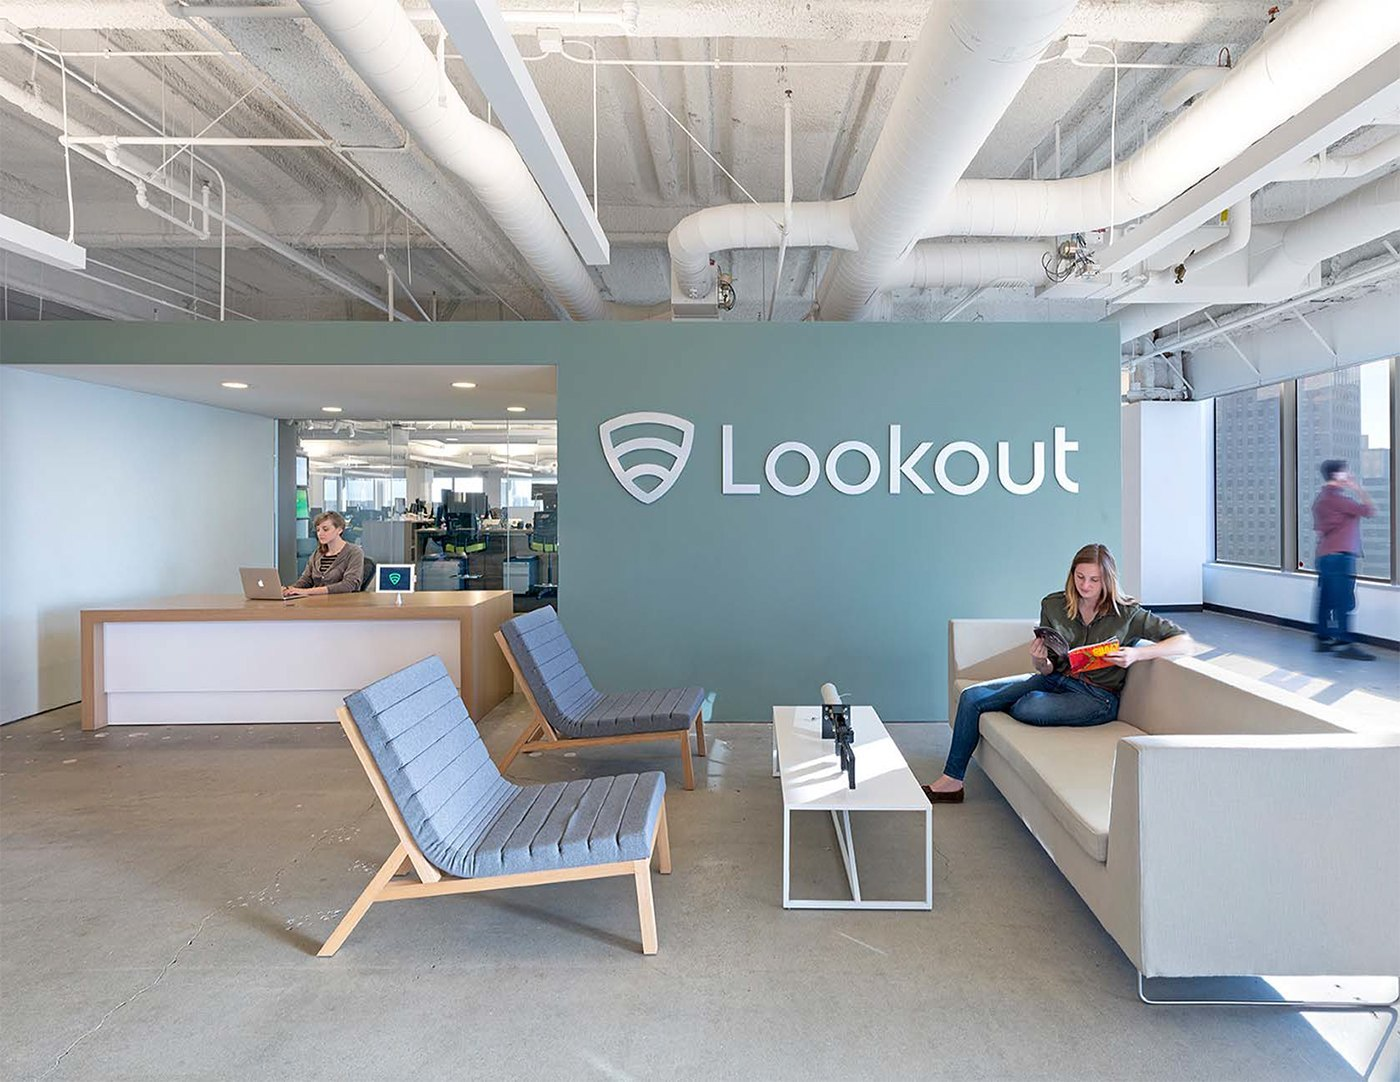 Another Look Inside Lookout's San Francisco Office